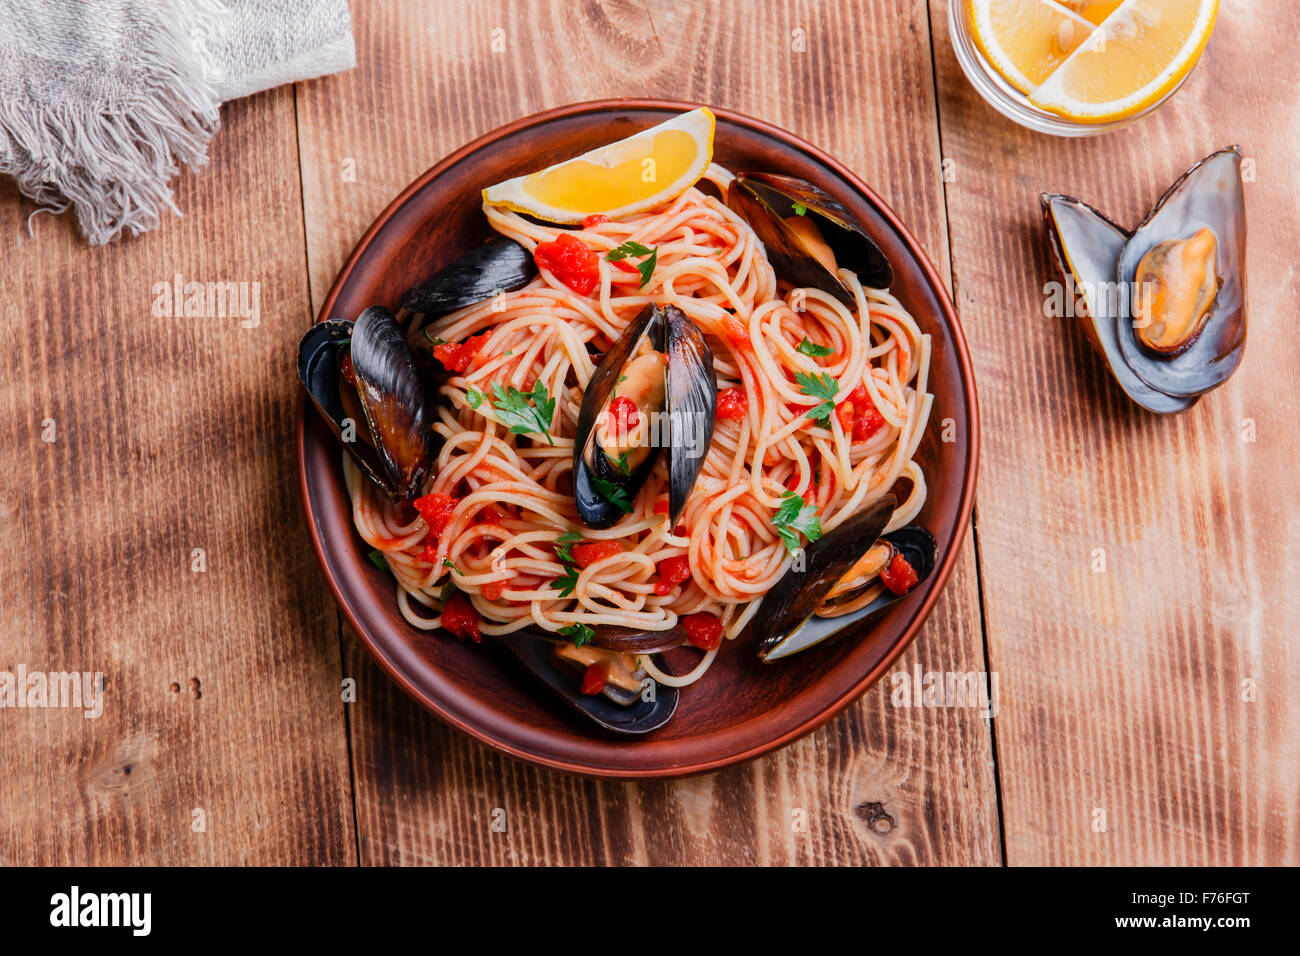 spaghetti with mussels oyster in tomato sauce - Stock Image